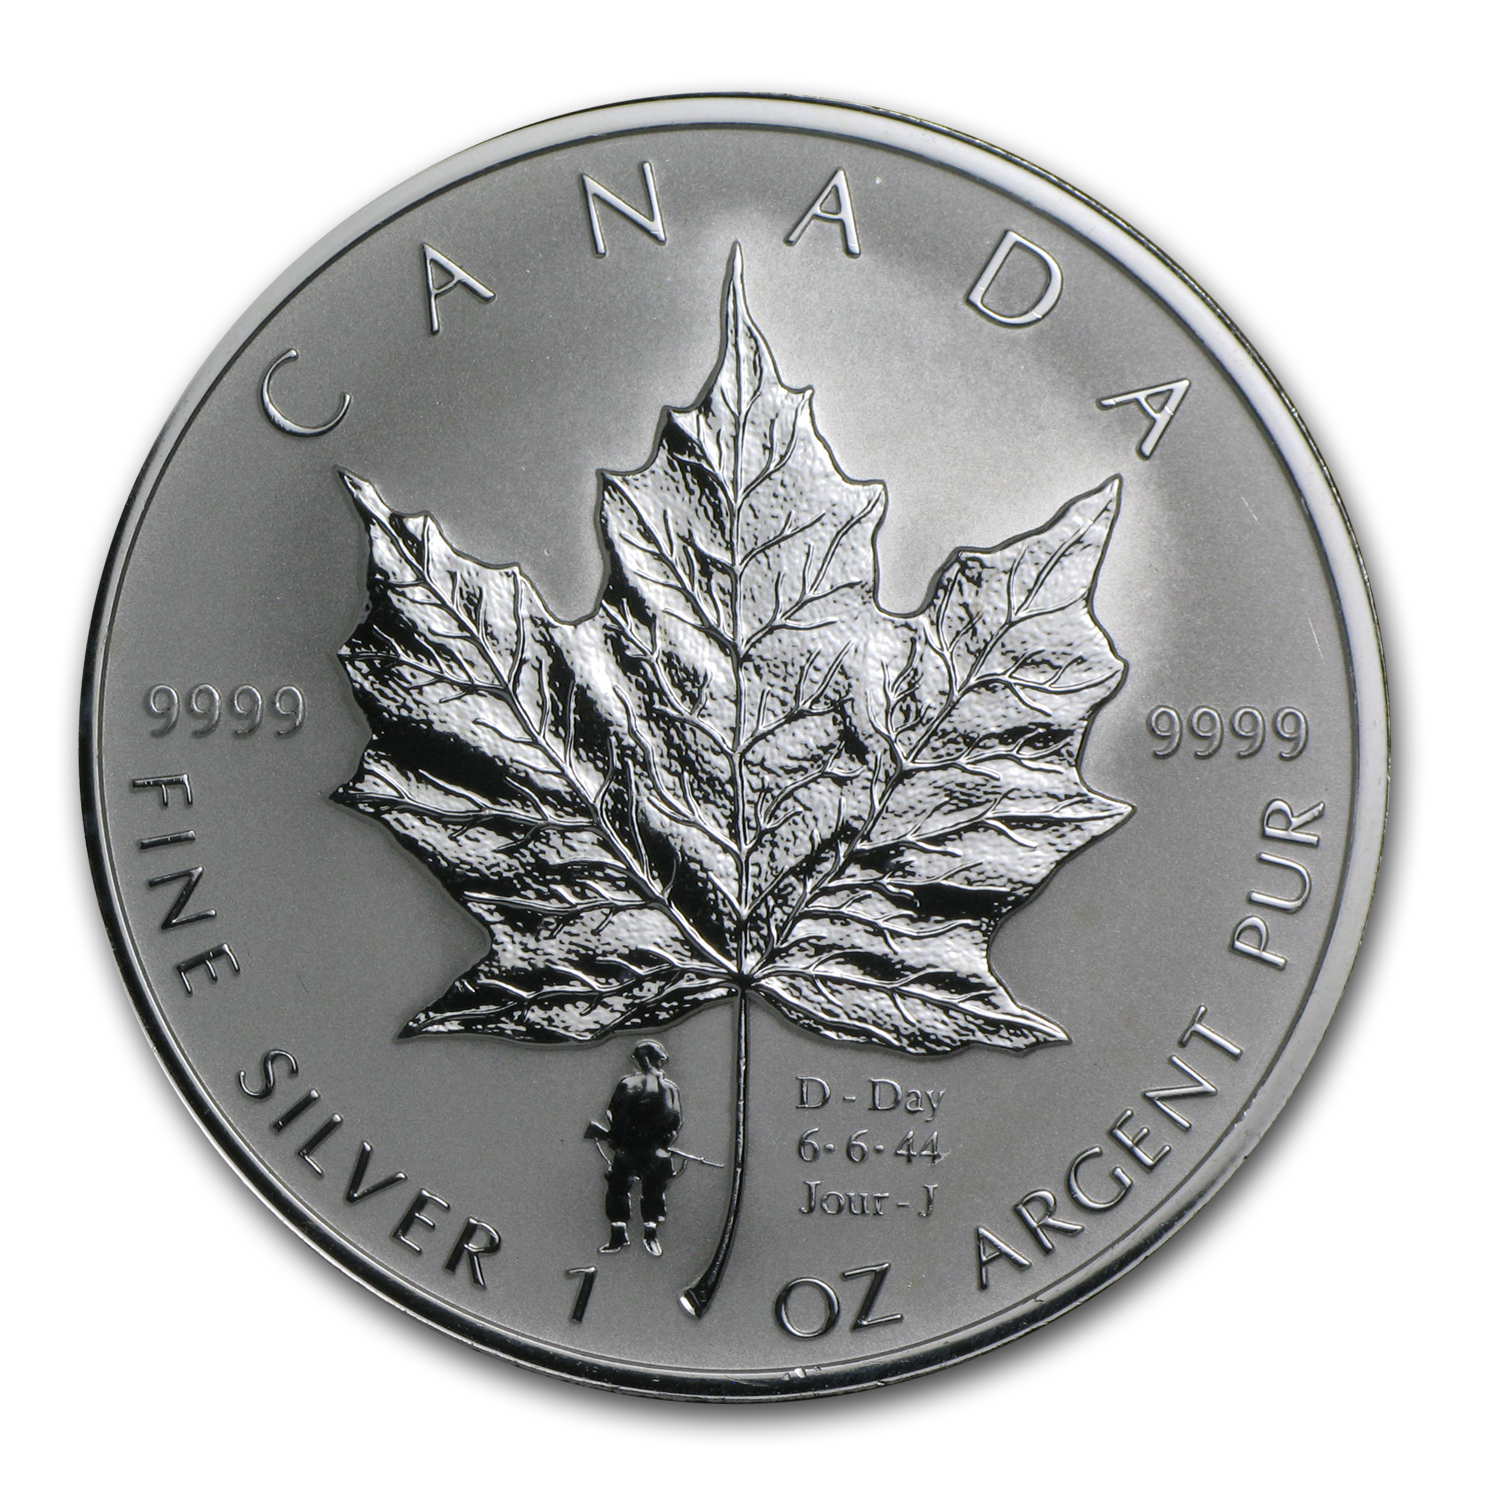 2004 1 oz Silver Canadian Maple Leaf (D-Day Privy)